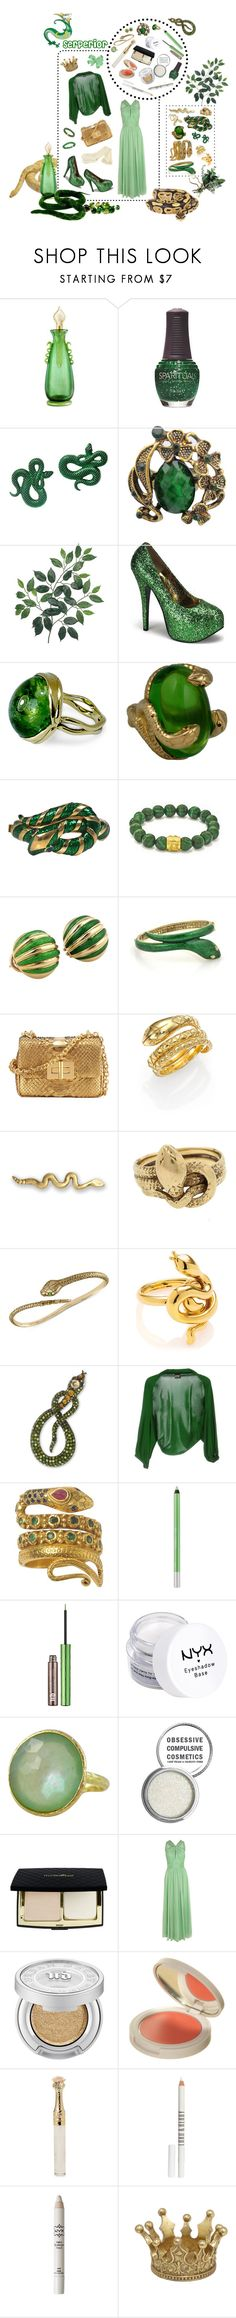 """""""Serperior"""" by ck0427 ❤ liked on Polyvore featuring The Merchant Of Venice, SpaRitual, Monki, Satya Jewelry, Bordello, Serena Fox, Trifari, Tiffany & Co., Tom Ford and Temple St. Clair"""